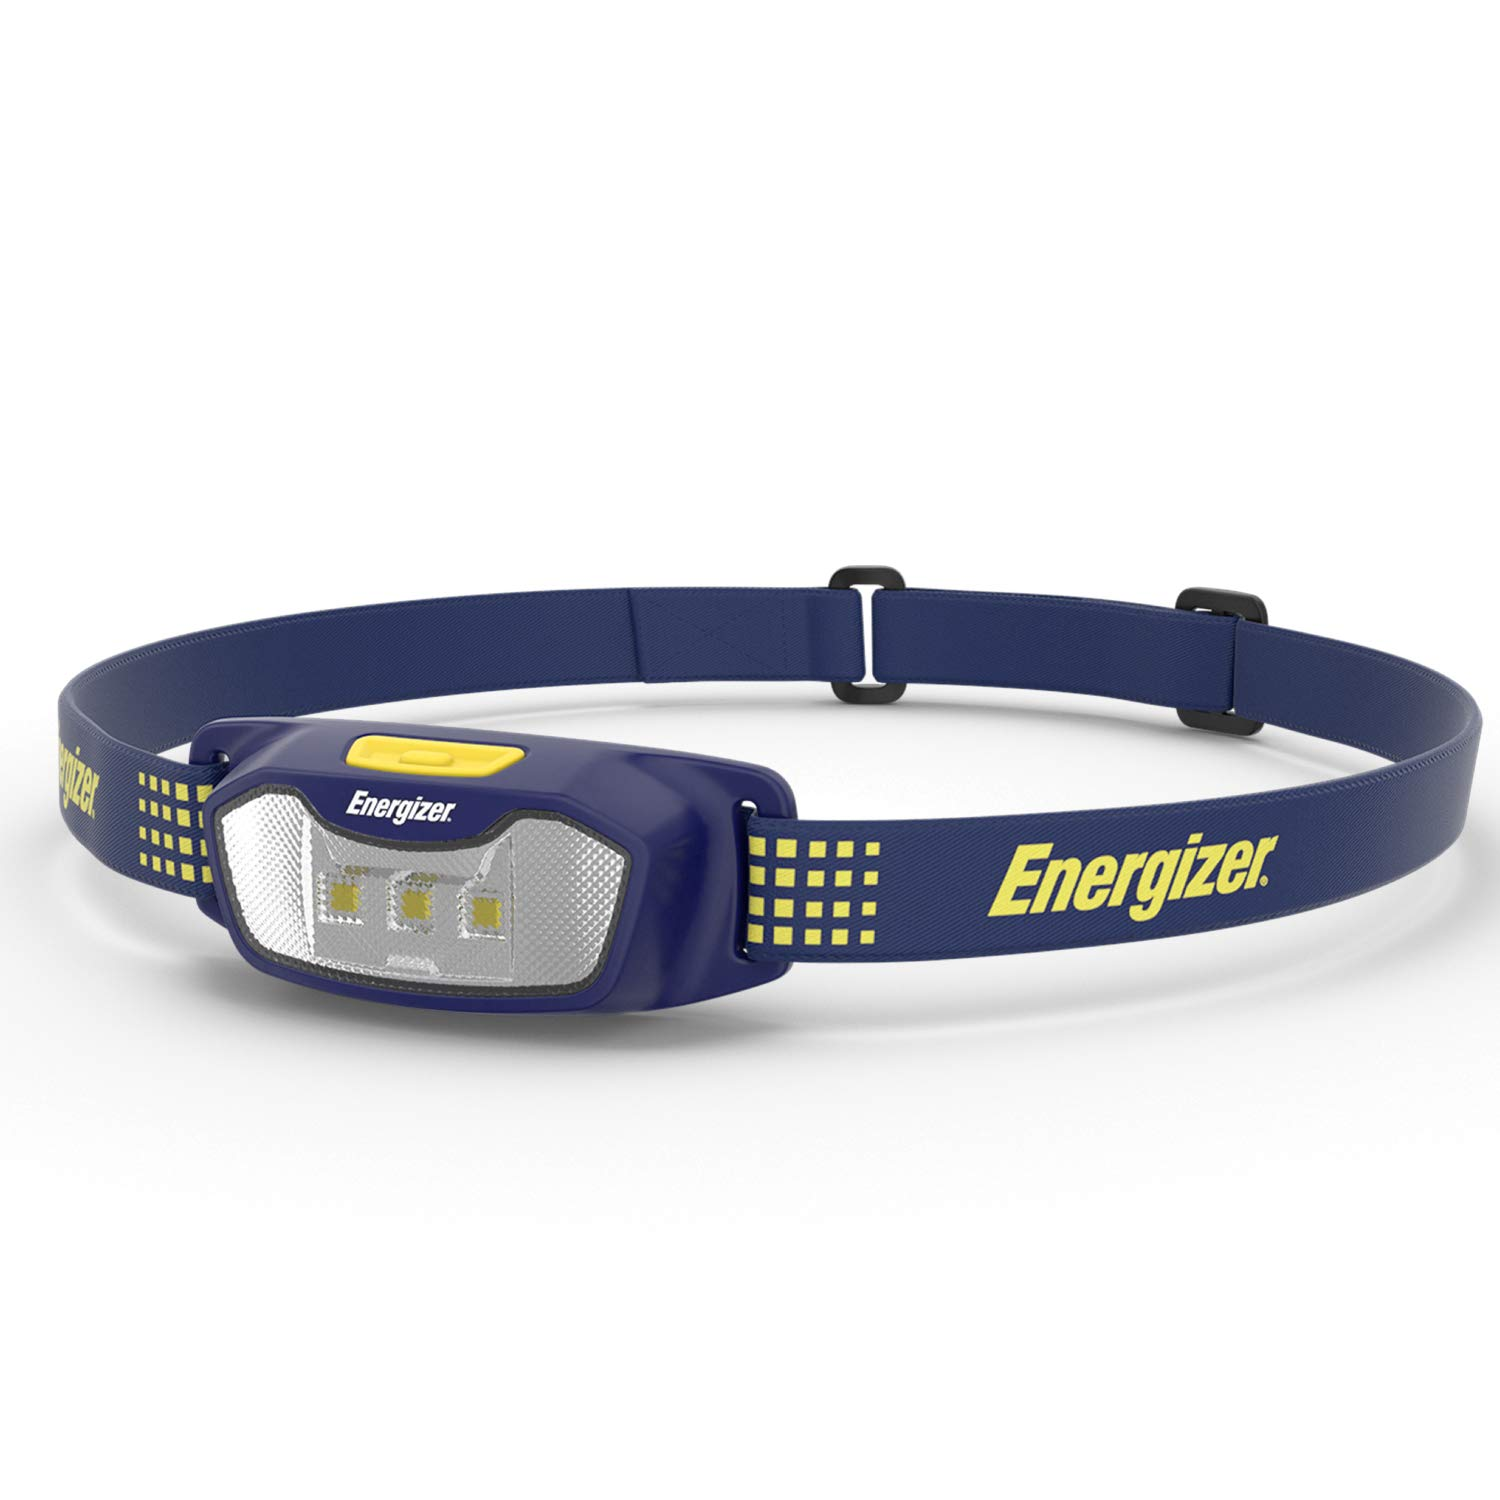 Energizer LED Headlamp Flashlight, Ultra Bright High Lumens, for Camping, Running, Hiking, Sports, Outdoors by Energizer